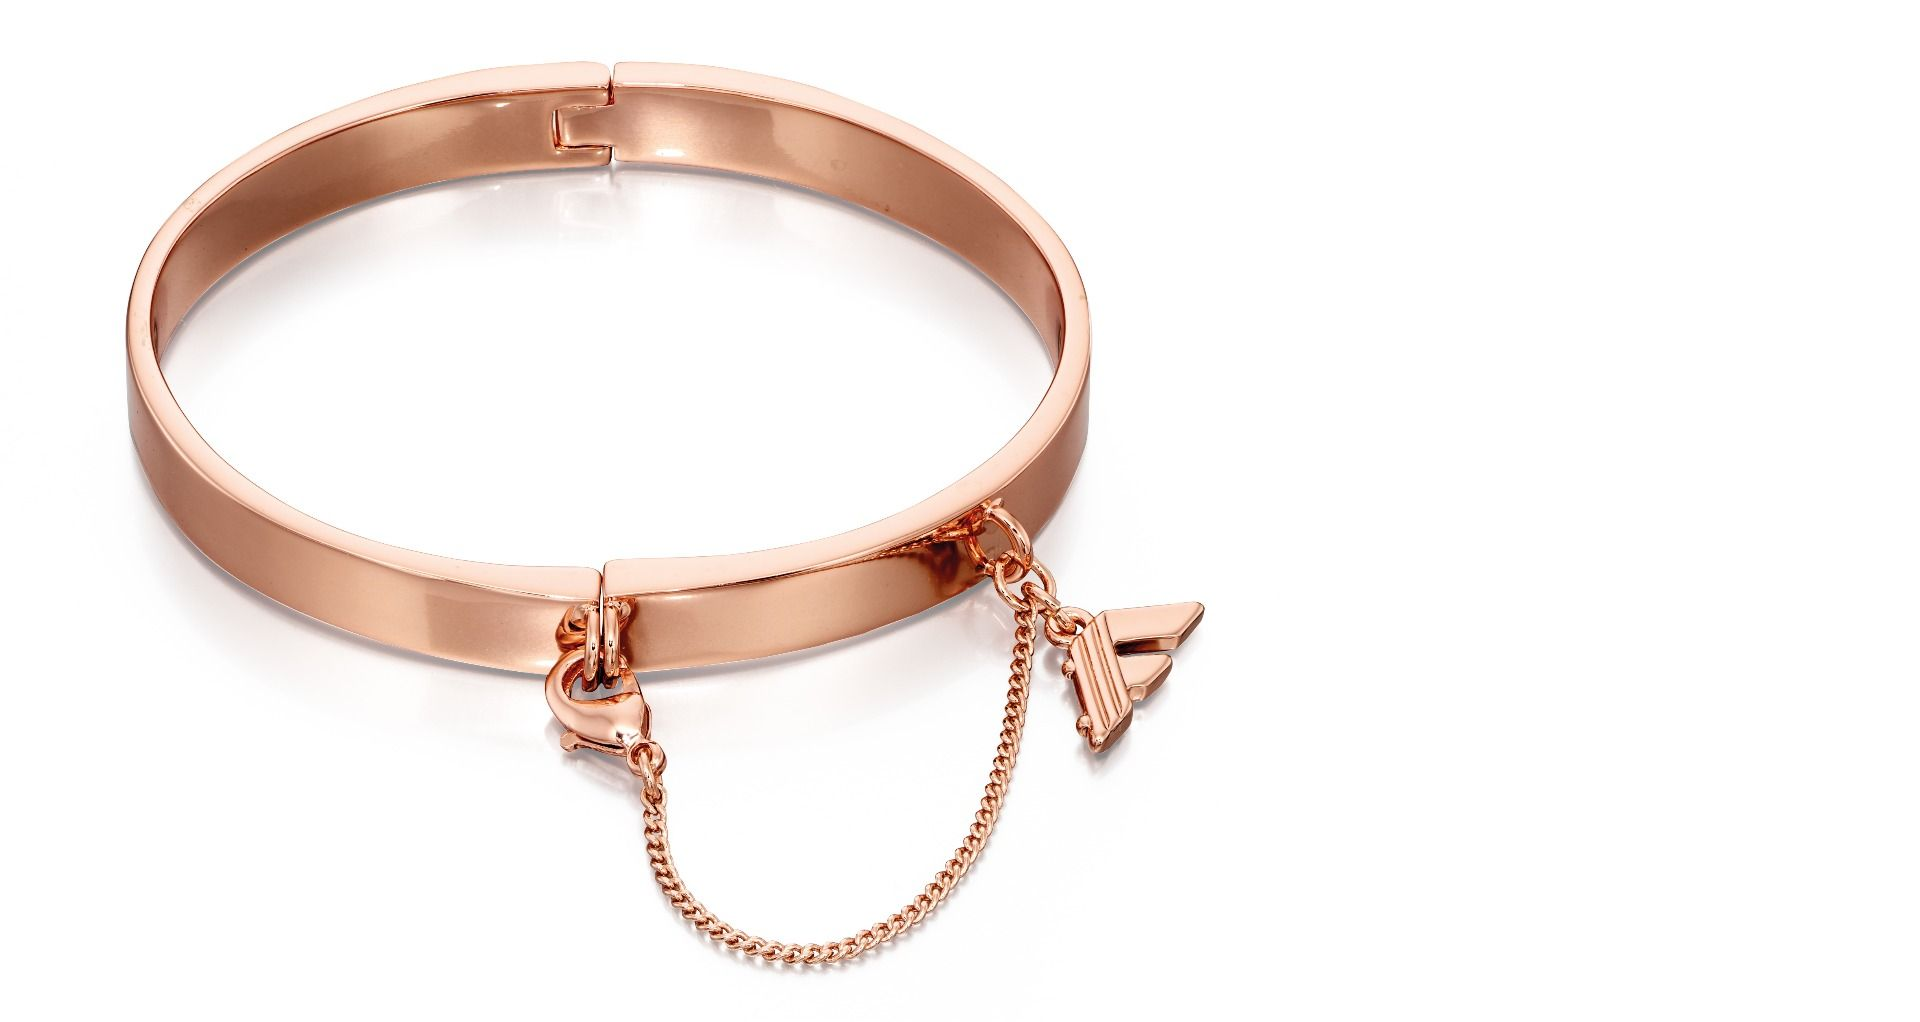 Fiorelli Fashion Rose Gold Plated Hinged Bangle Bracelet with Chain Clasp